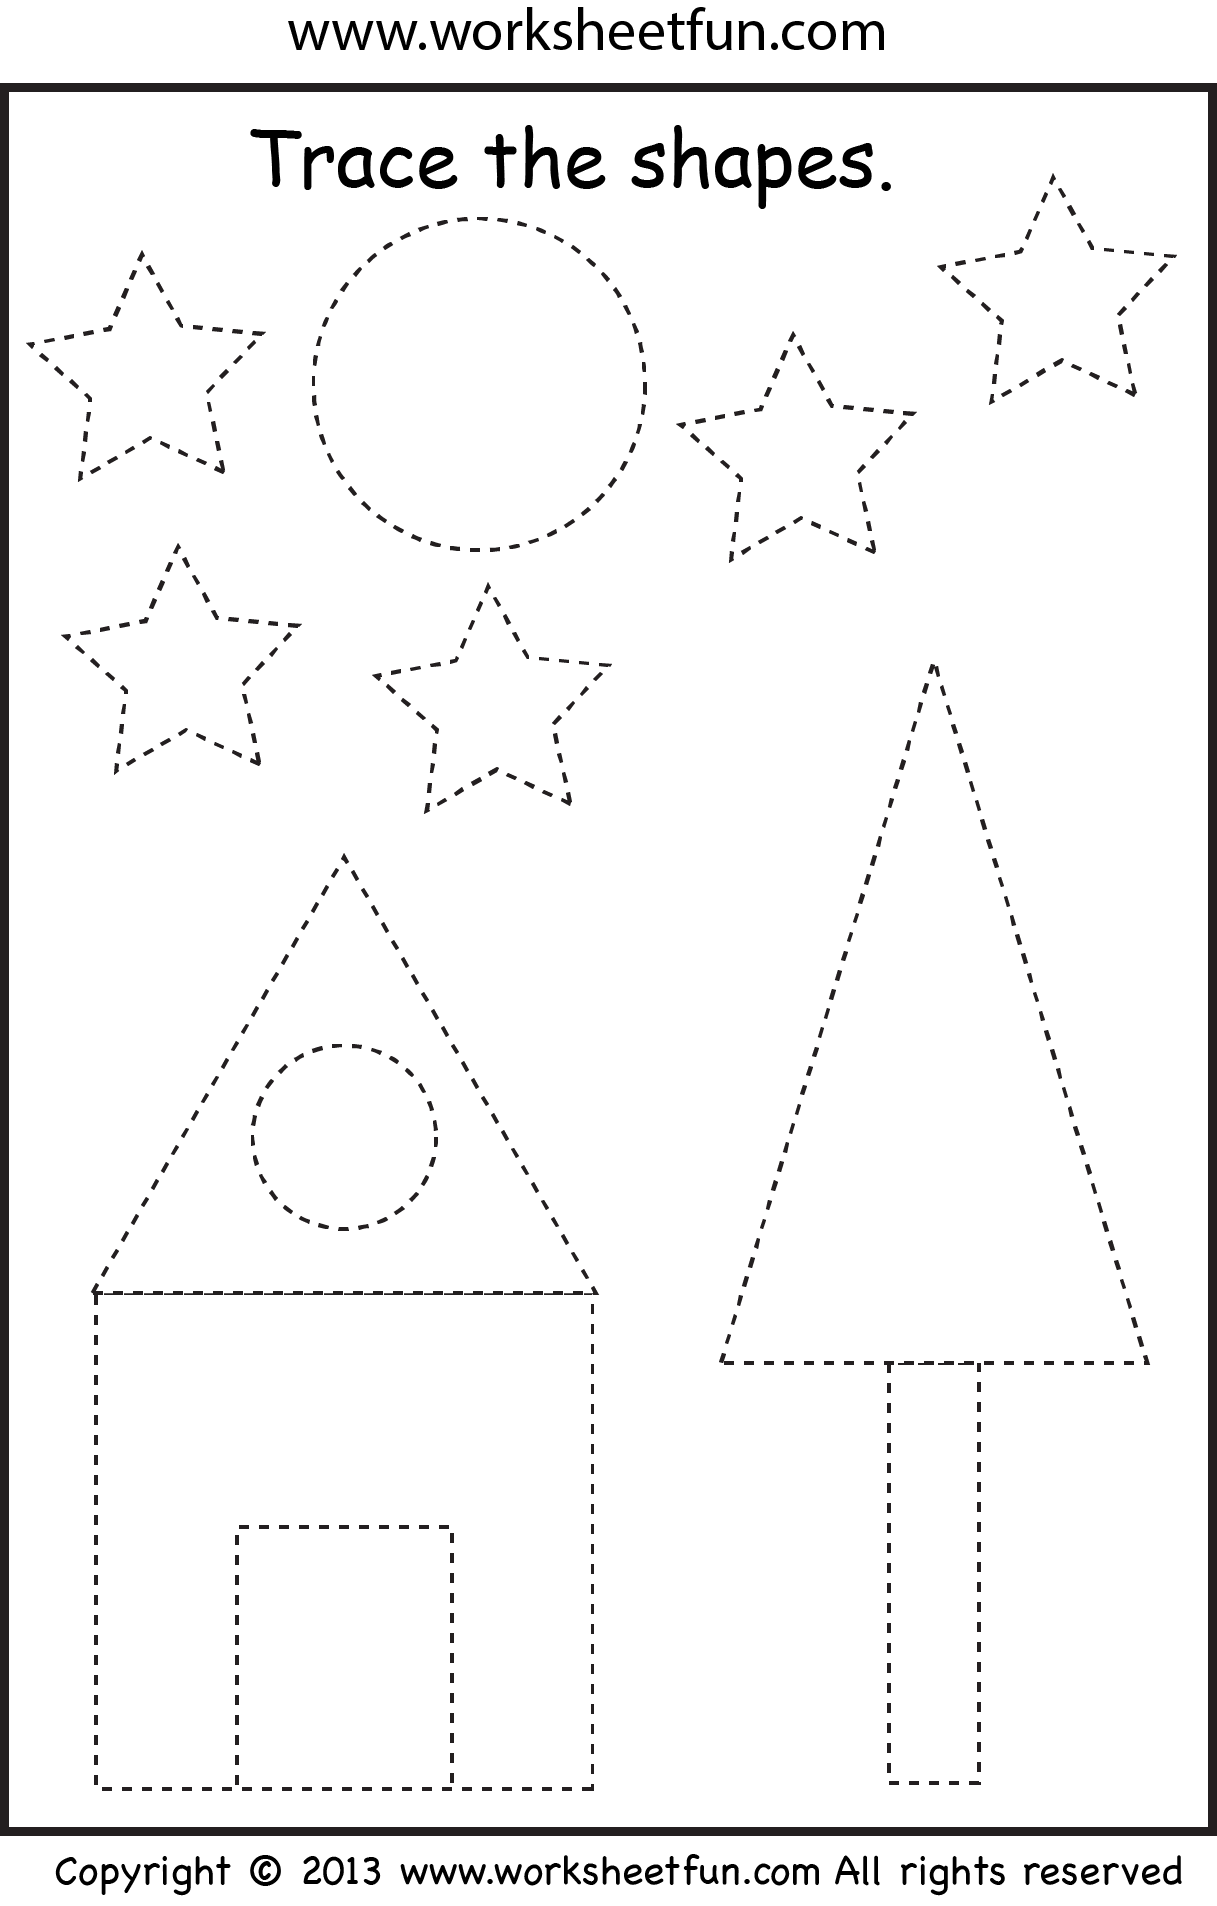 Worksheets Tracing Shapes Worksheets preschool shape tracing worksheet pinterest shapes worksheets tracing